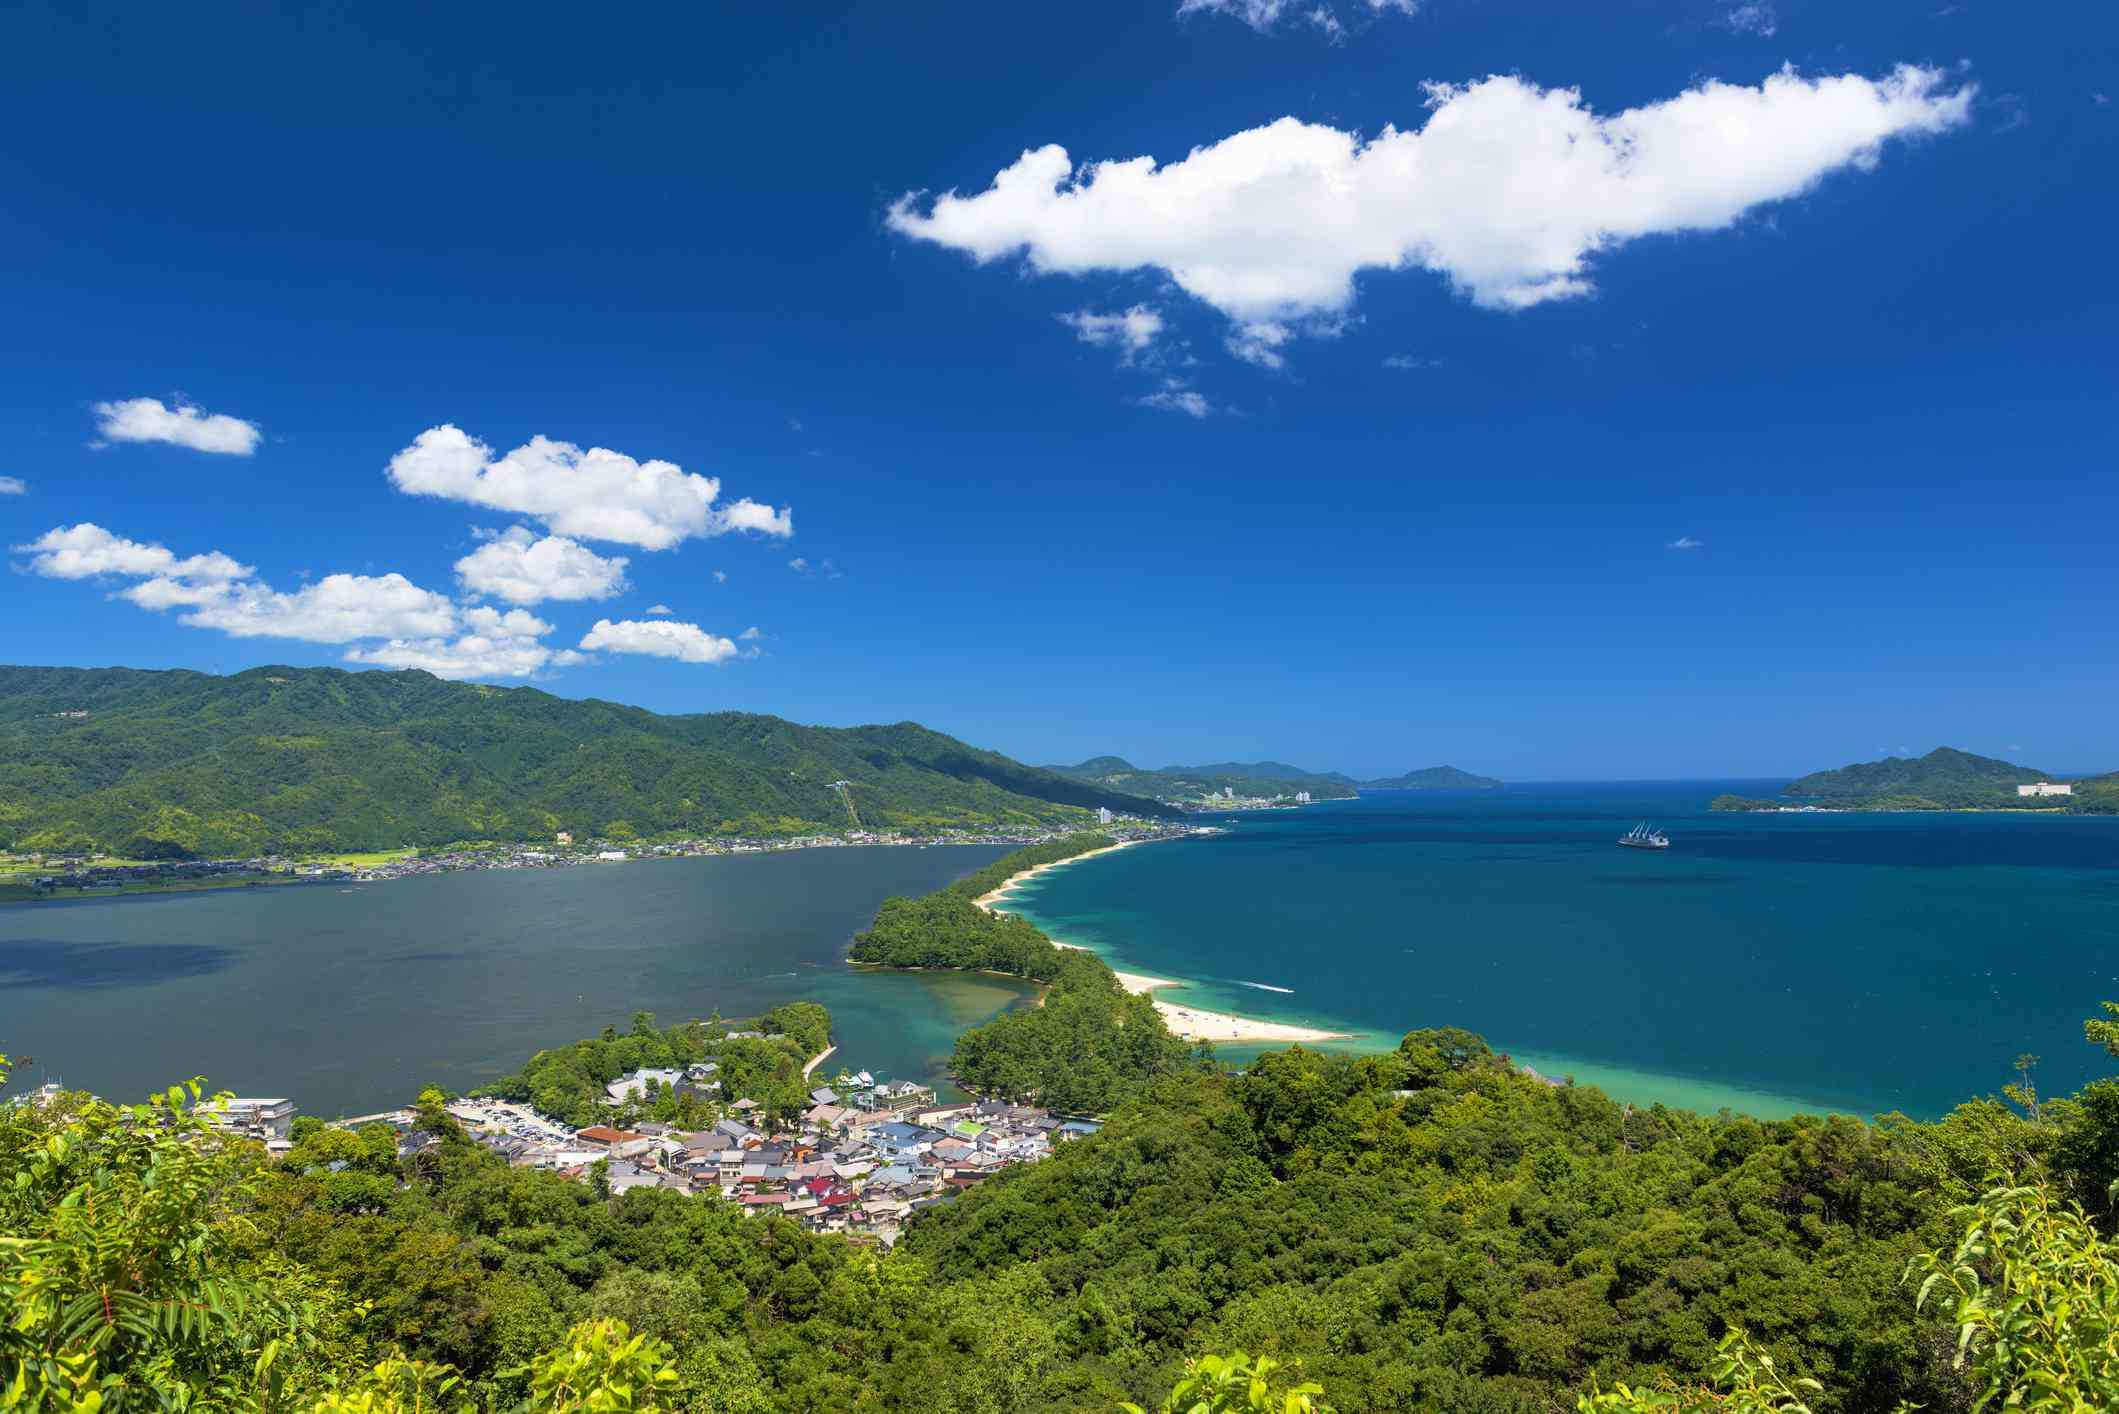 view of the Amanohashidate sandbar on a clear day